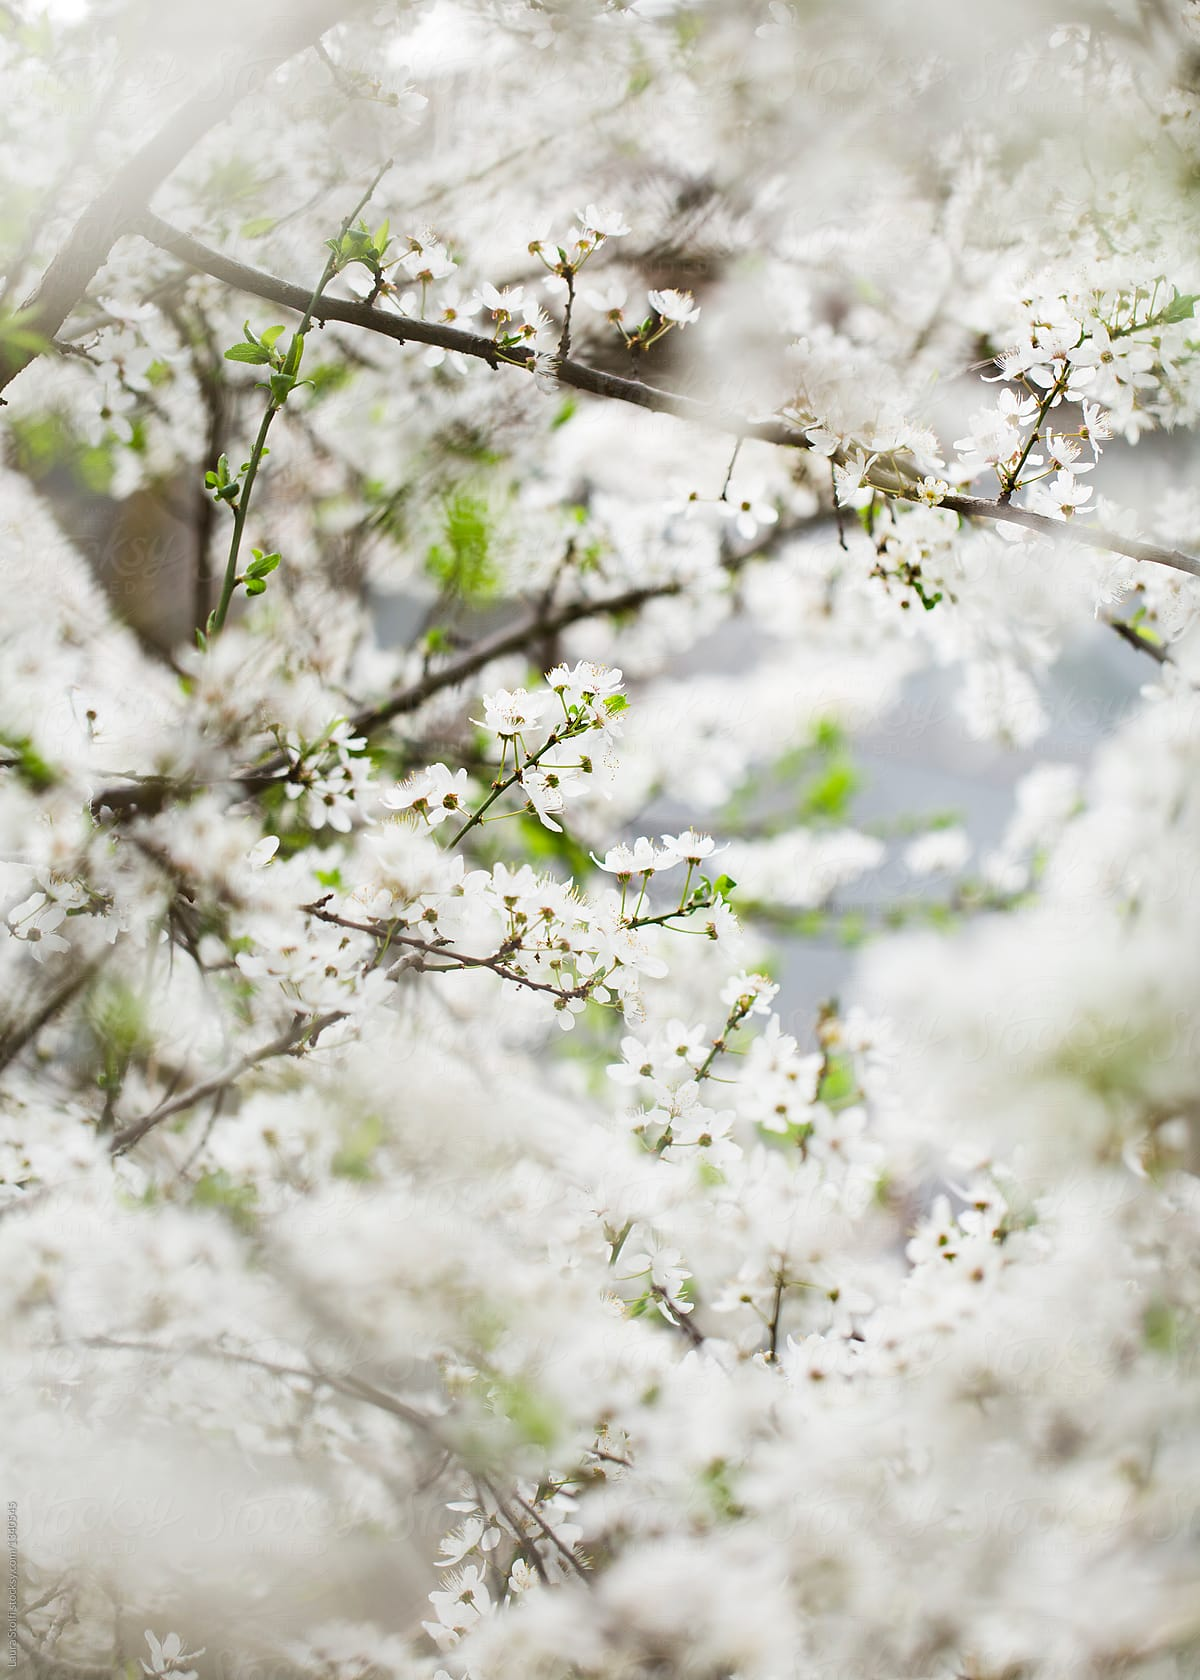 White Blossom Plum Tree Covered With White Flowers Stocksy United